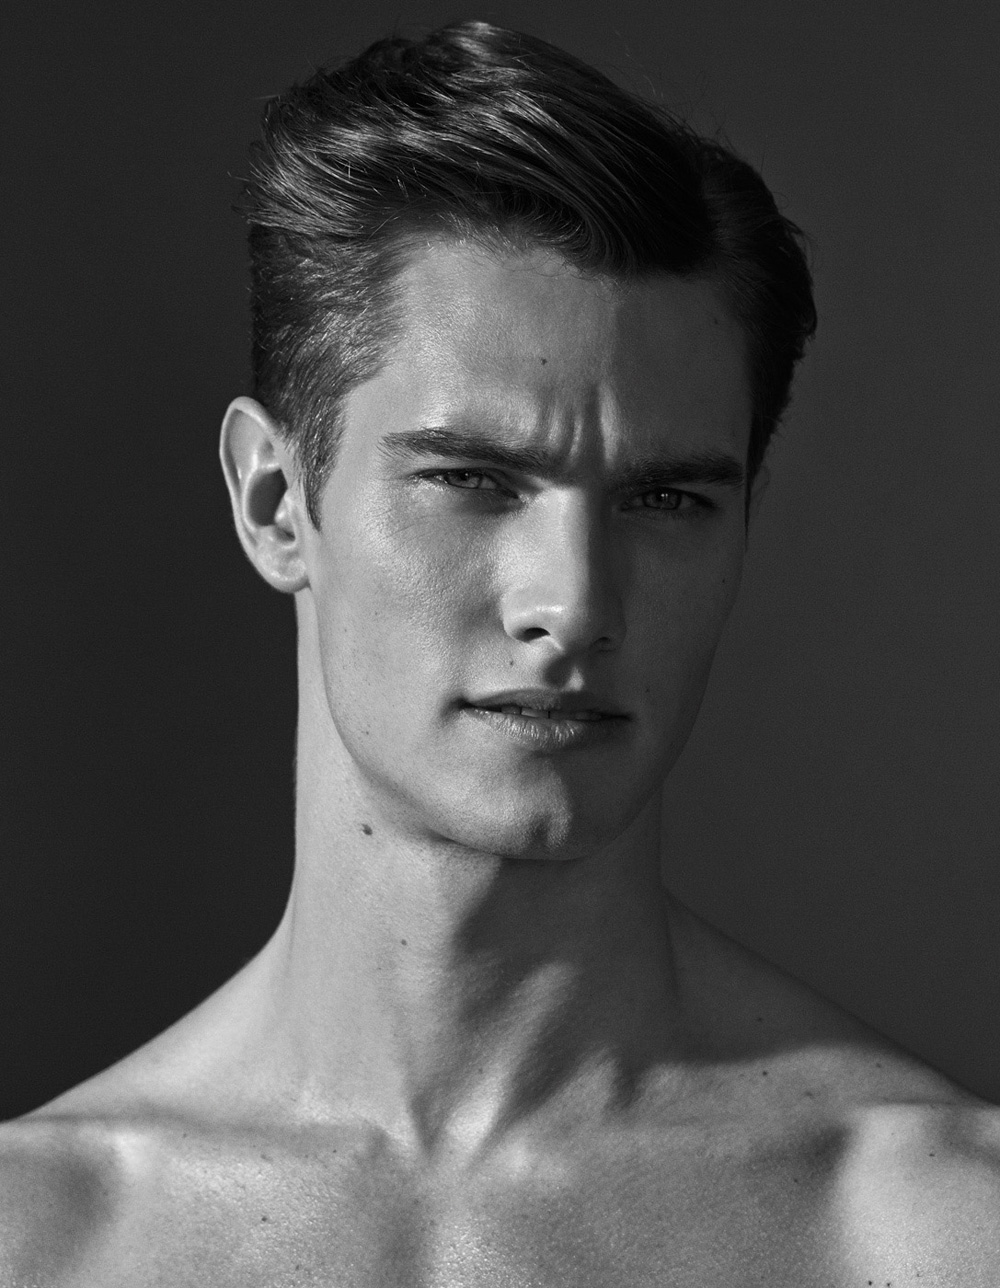 ... male model <b>Marcus Hedbrandh</b> possess an athletic figure and perfect face ... - marcus-hedbrandh-by-martin-petersson932